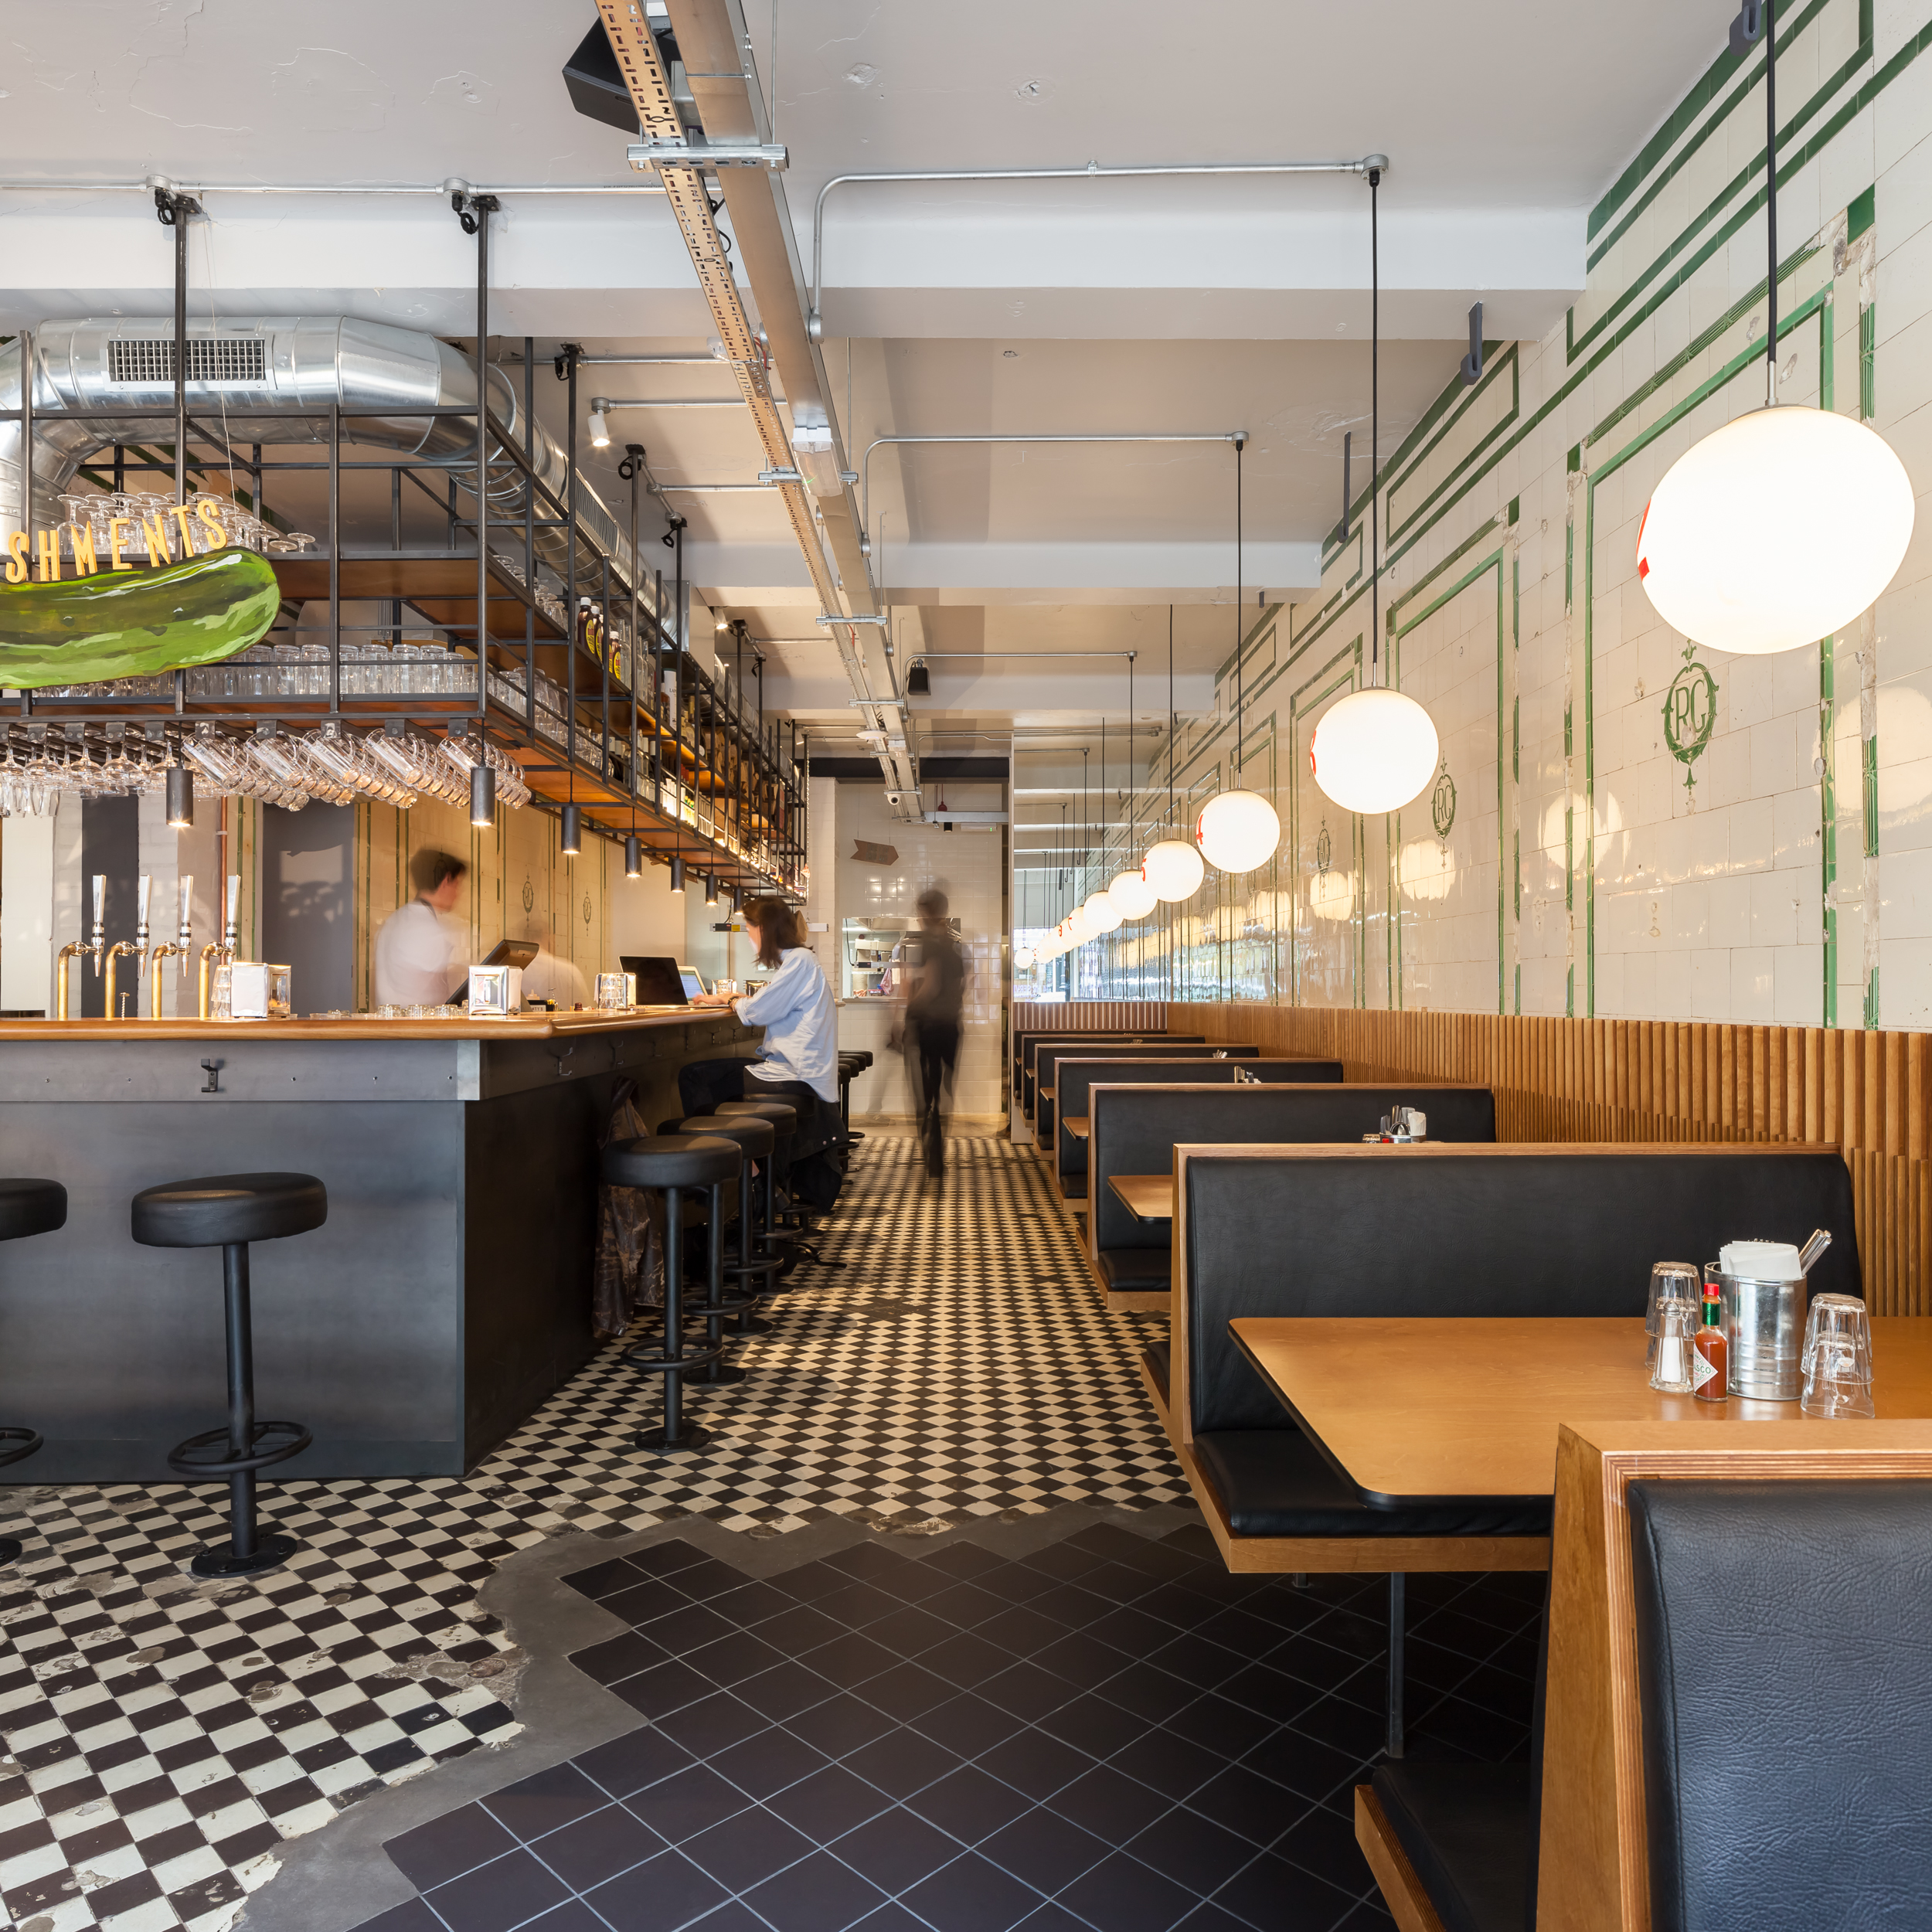 Pano_0369_0376-Edit - MATA_Architects_Montys_Deli.jpg